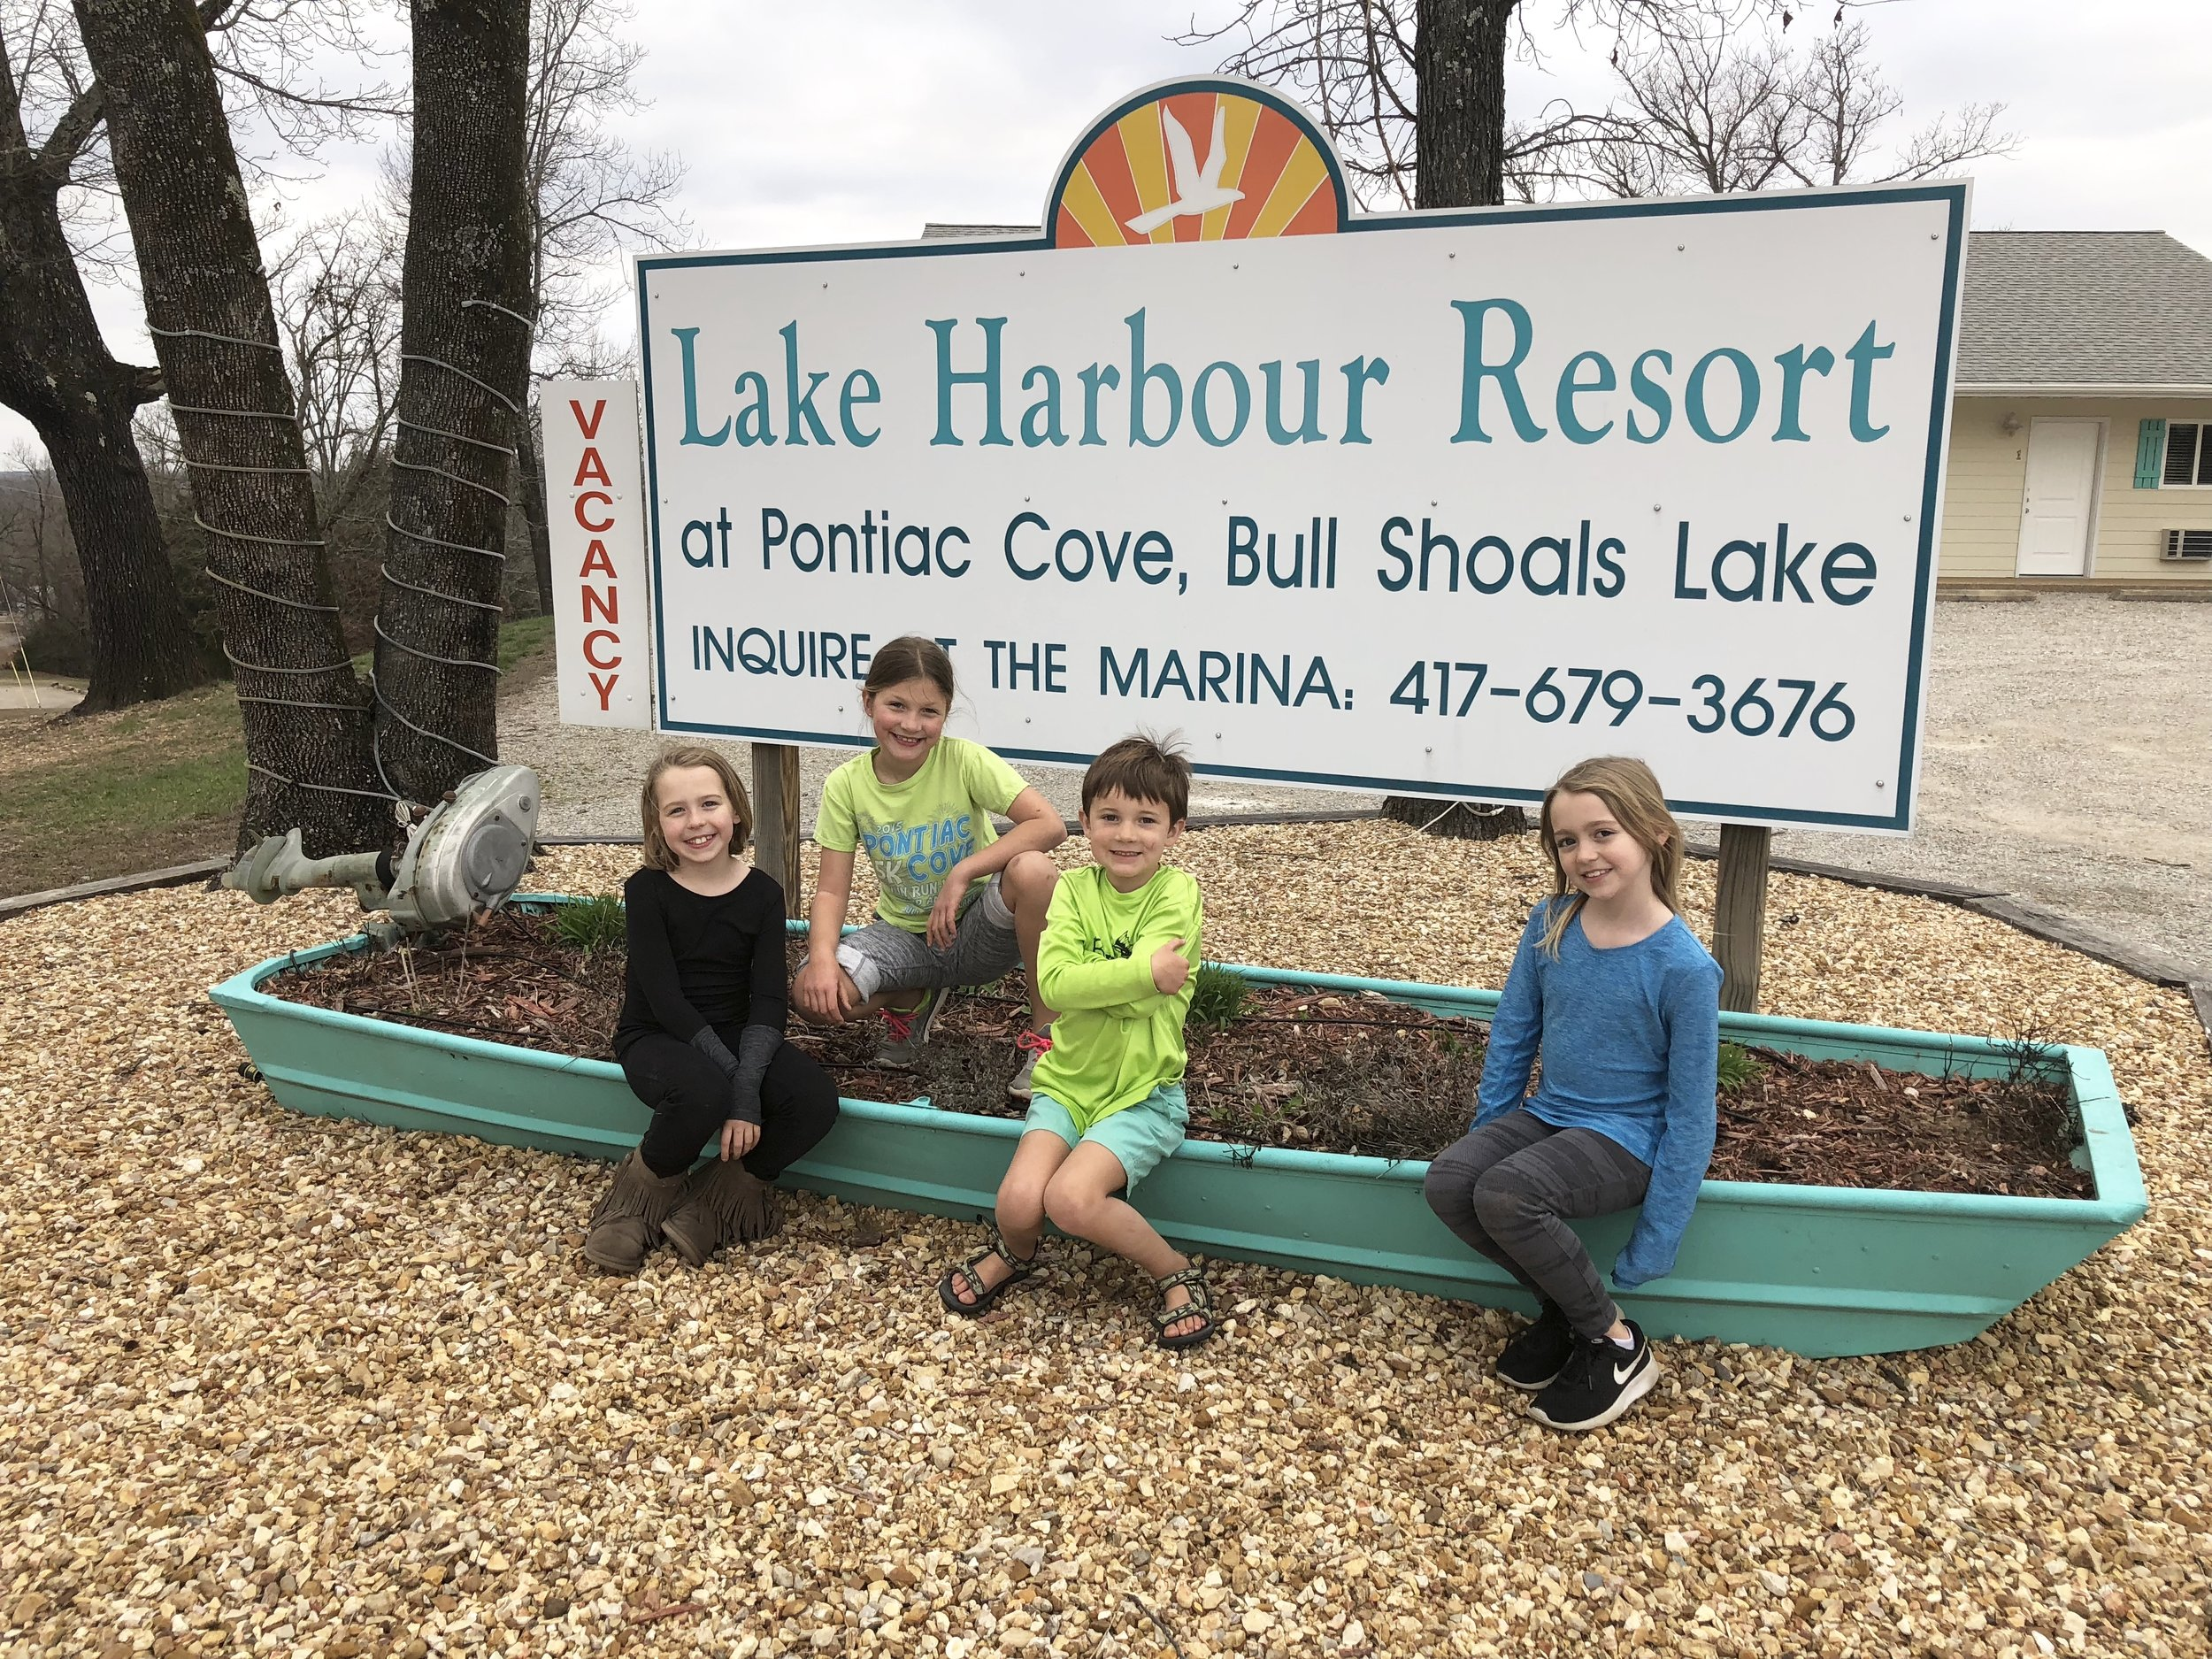 Lake Harbour Resort on Bull Shoals Lake in Southern Missouri